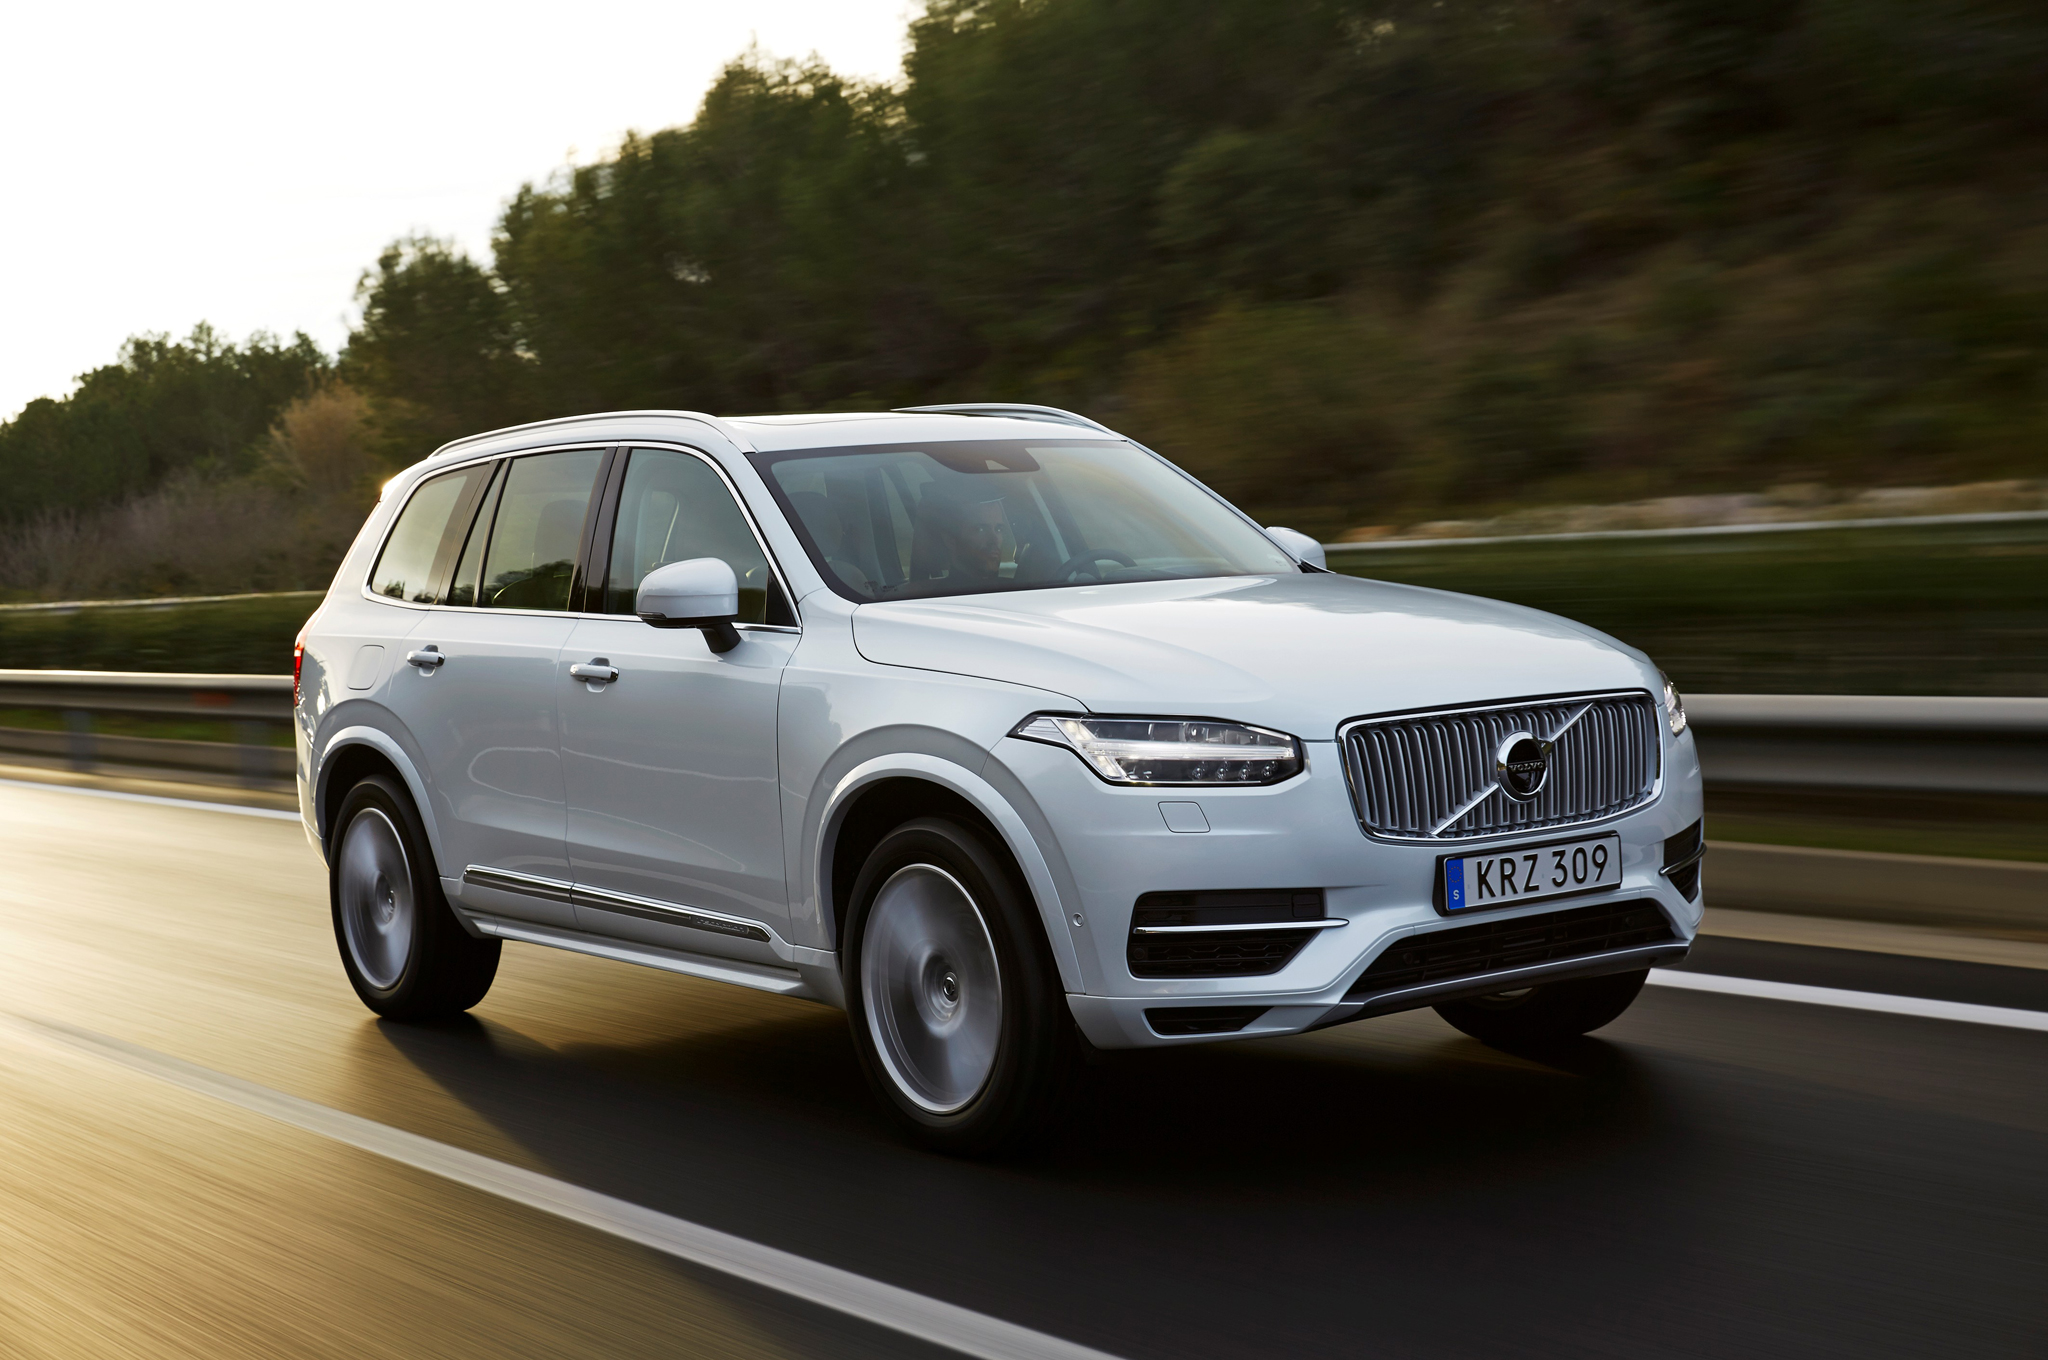 2016 Volvo Xc90 T8 Performance Test (Photo 13 of 18)